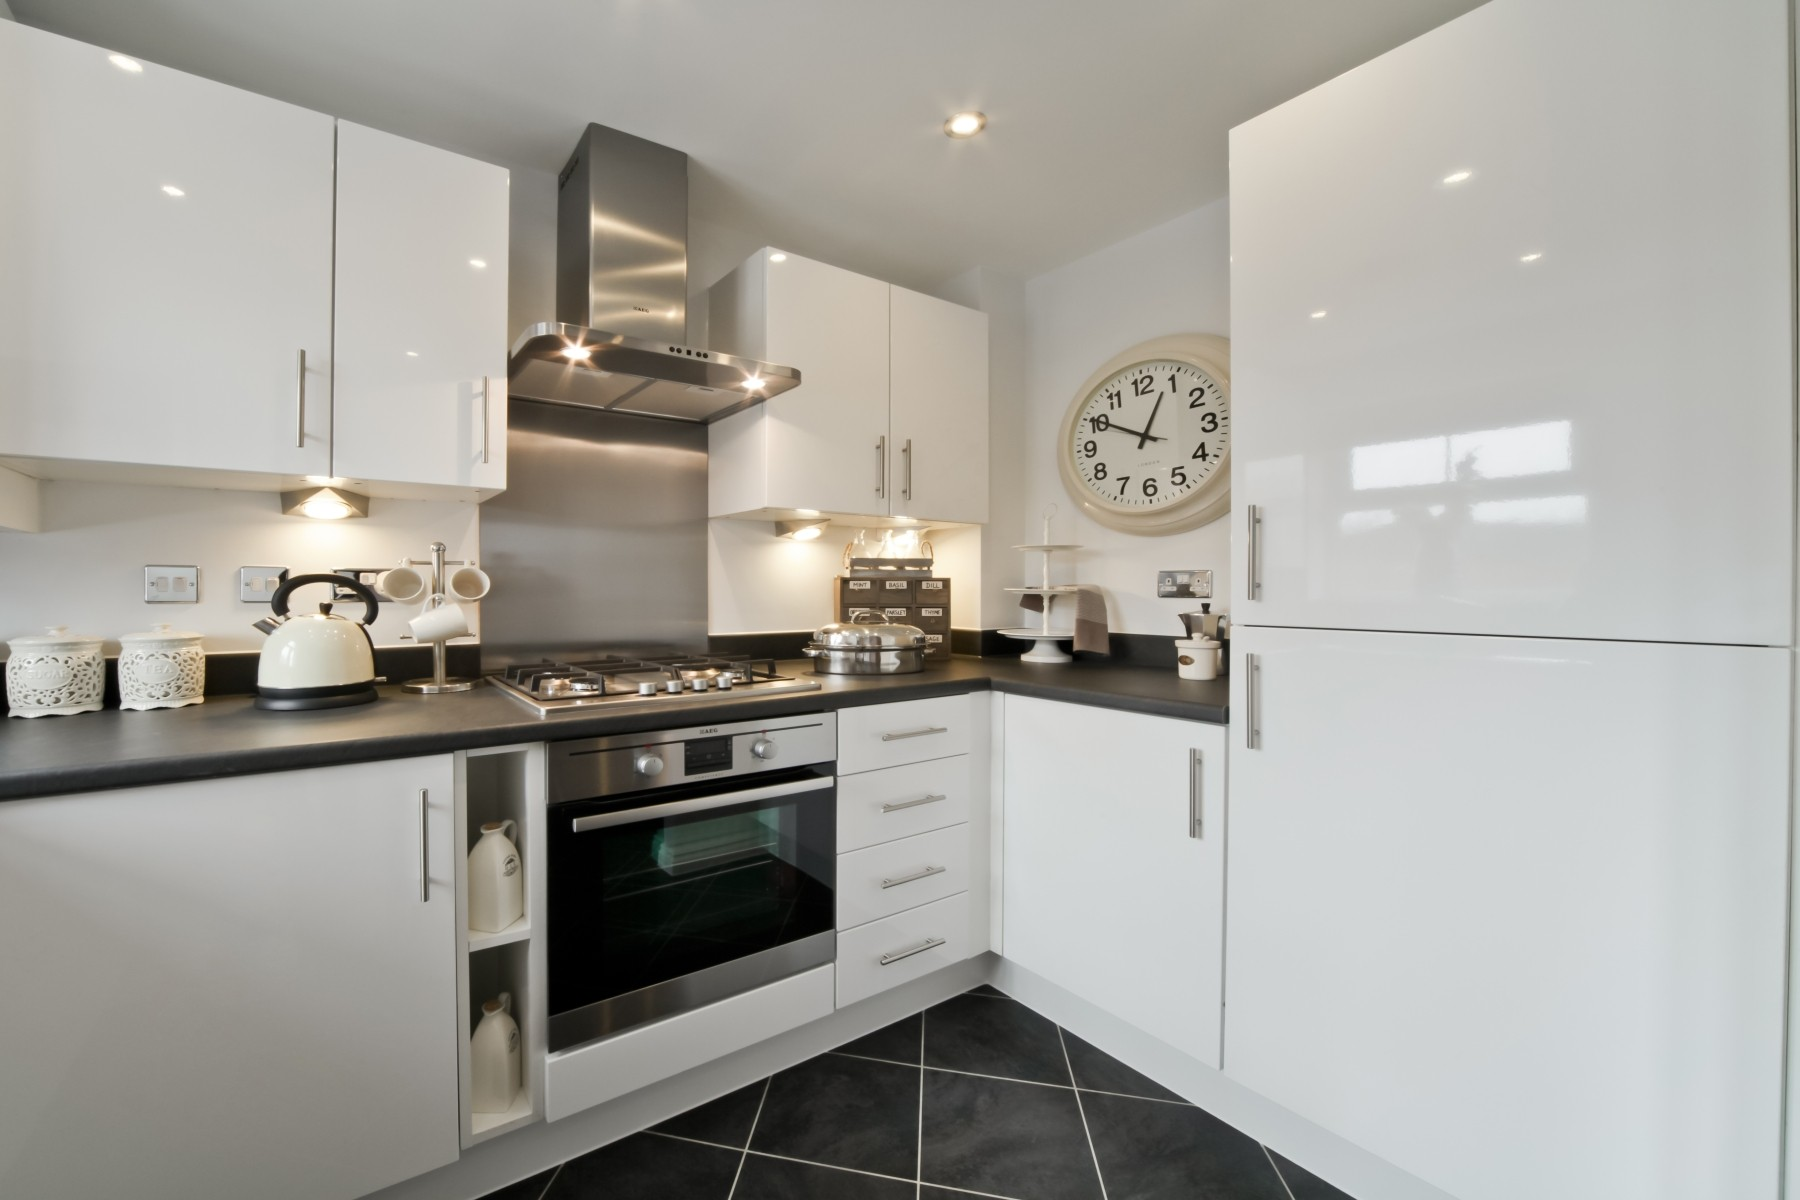 TW Exeter - Plumb Park - Osmington example kitchen 2